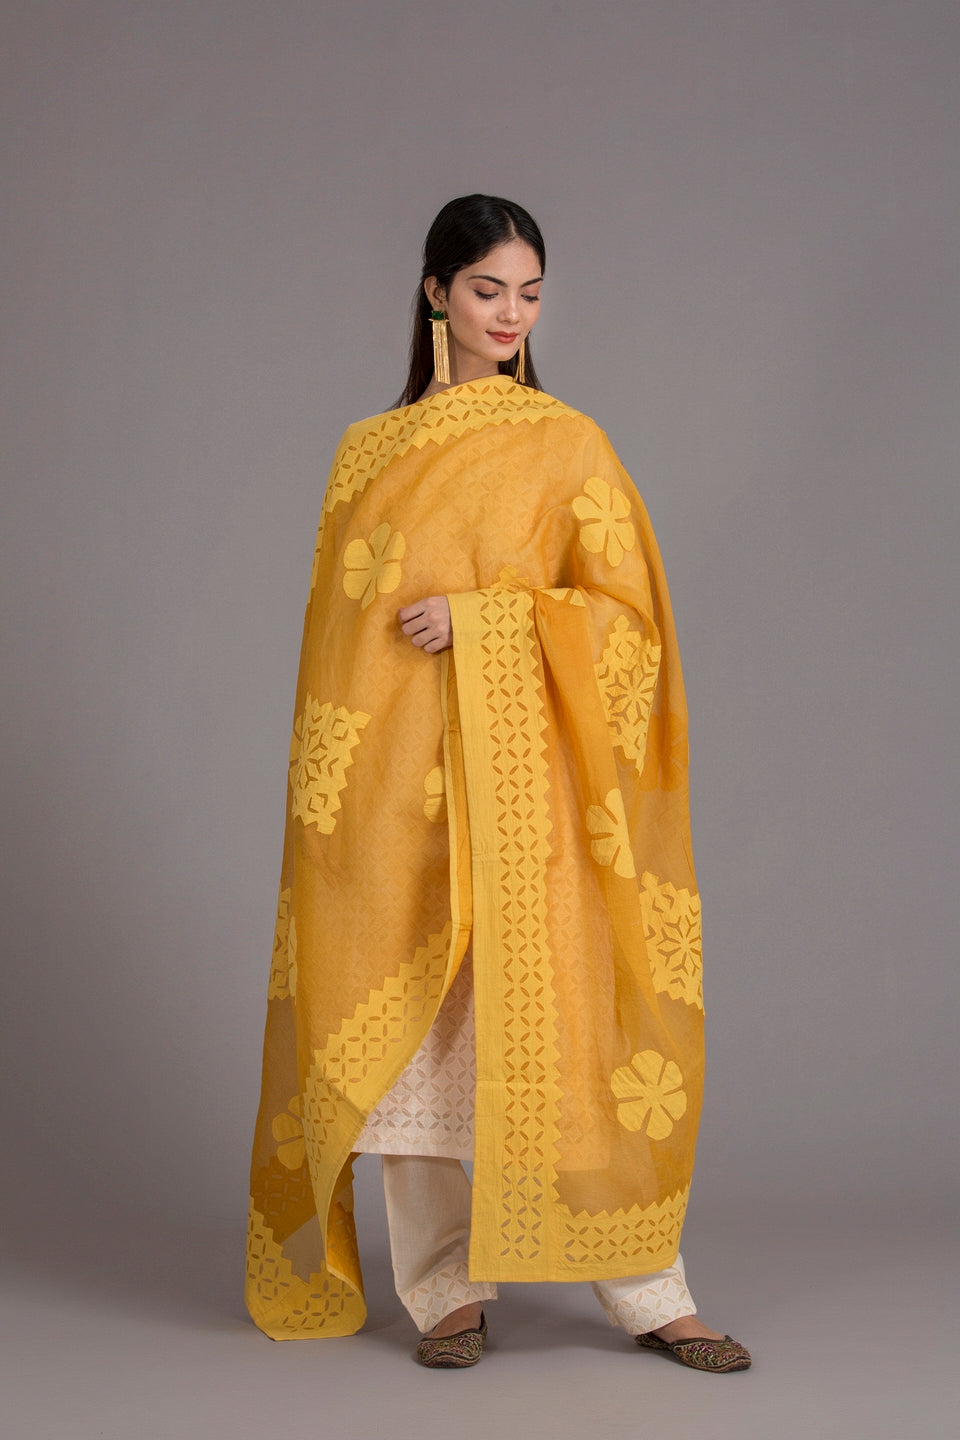 Floral Diamond Applique Cotton with Khuddi Design Border, Yellow